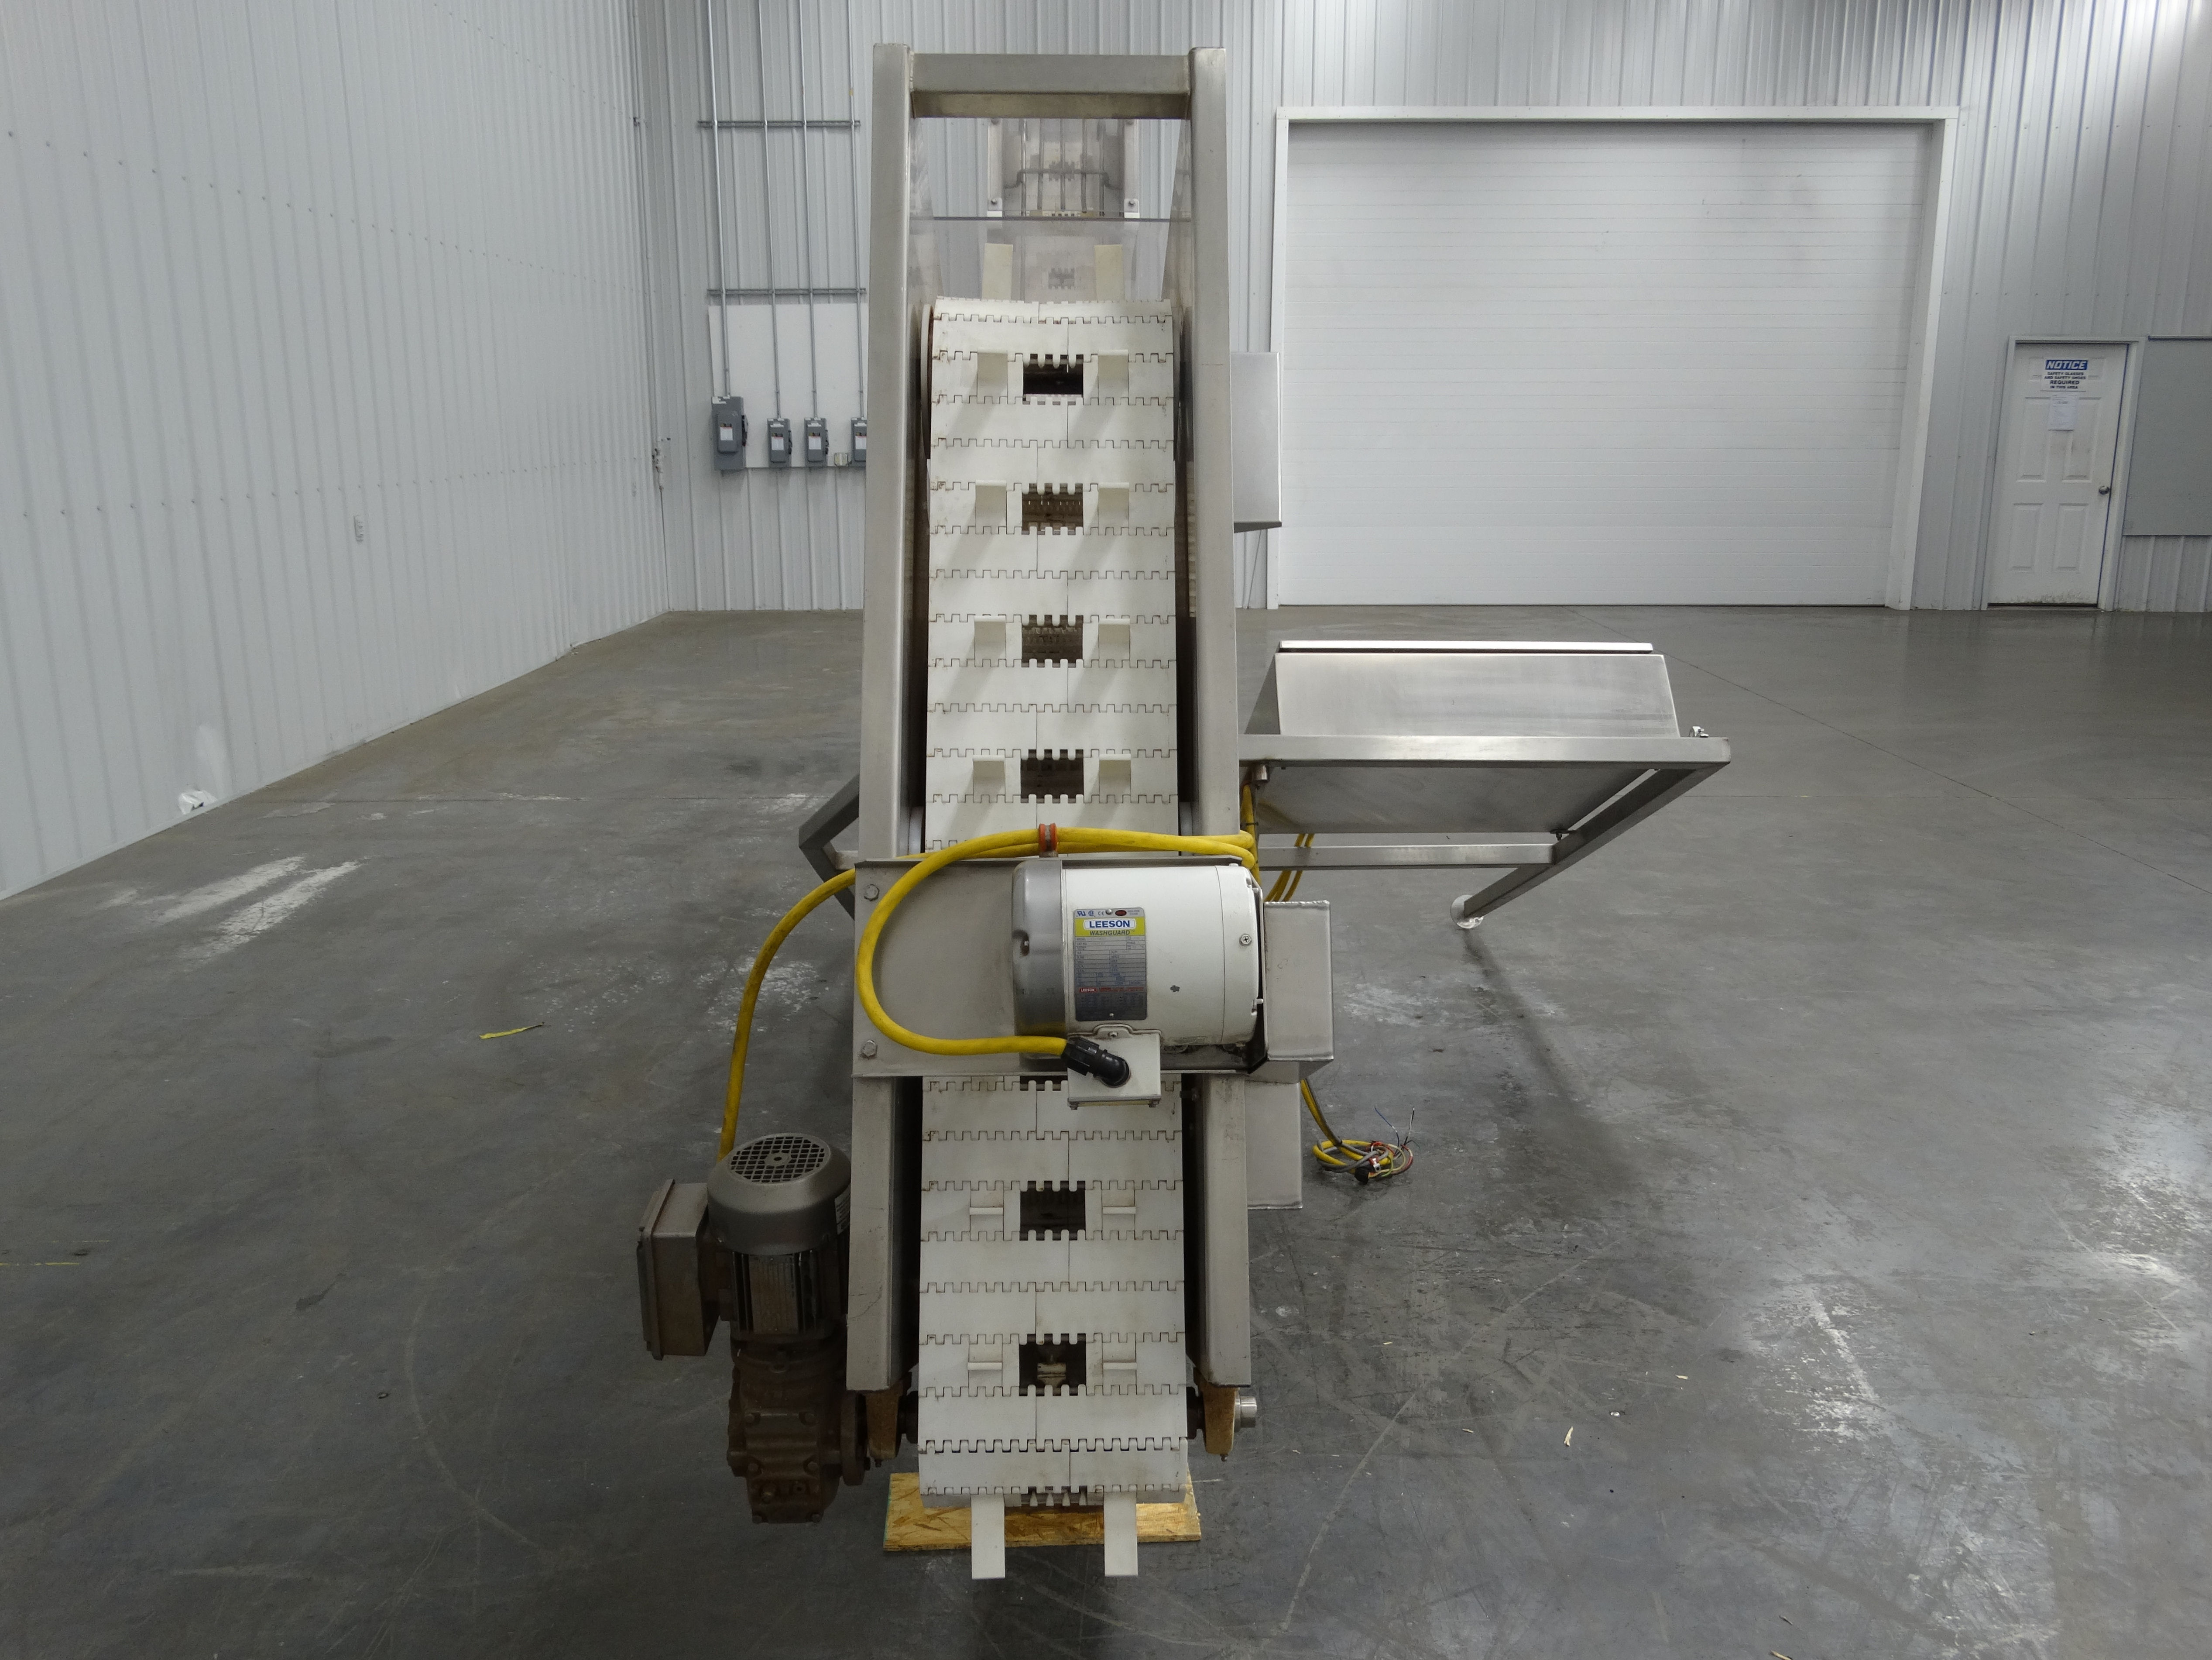 CHL Systems IIC-800-11 Cleated Incline Conveyor D2023 - Image 5 of 10